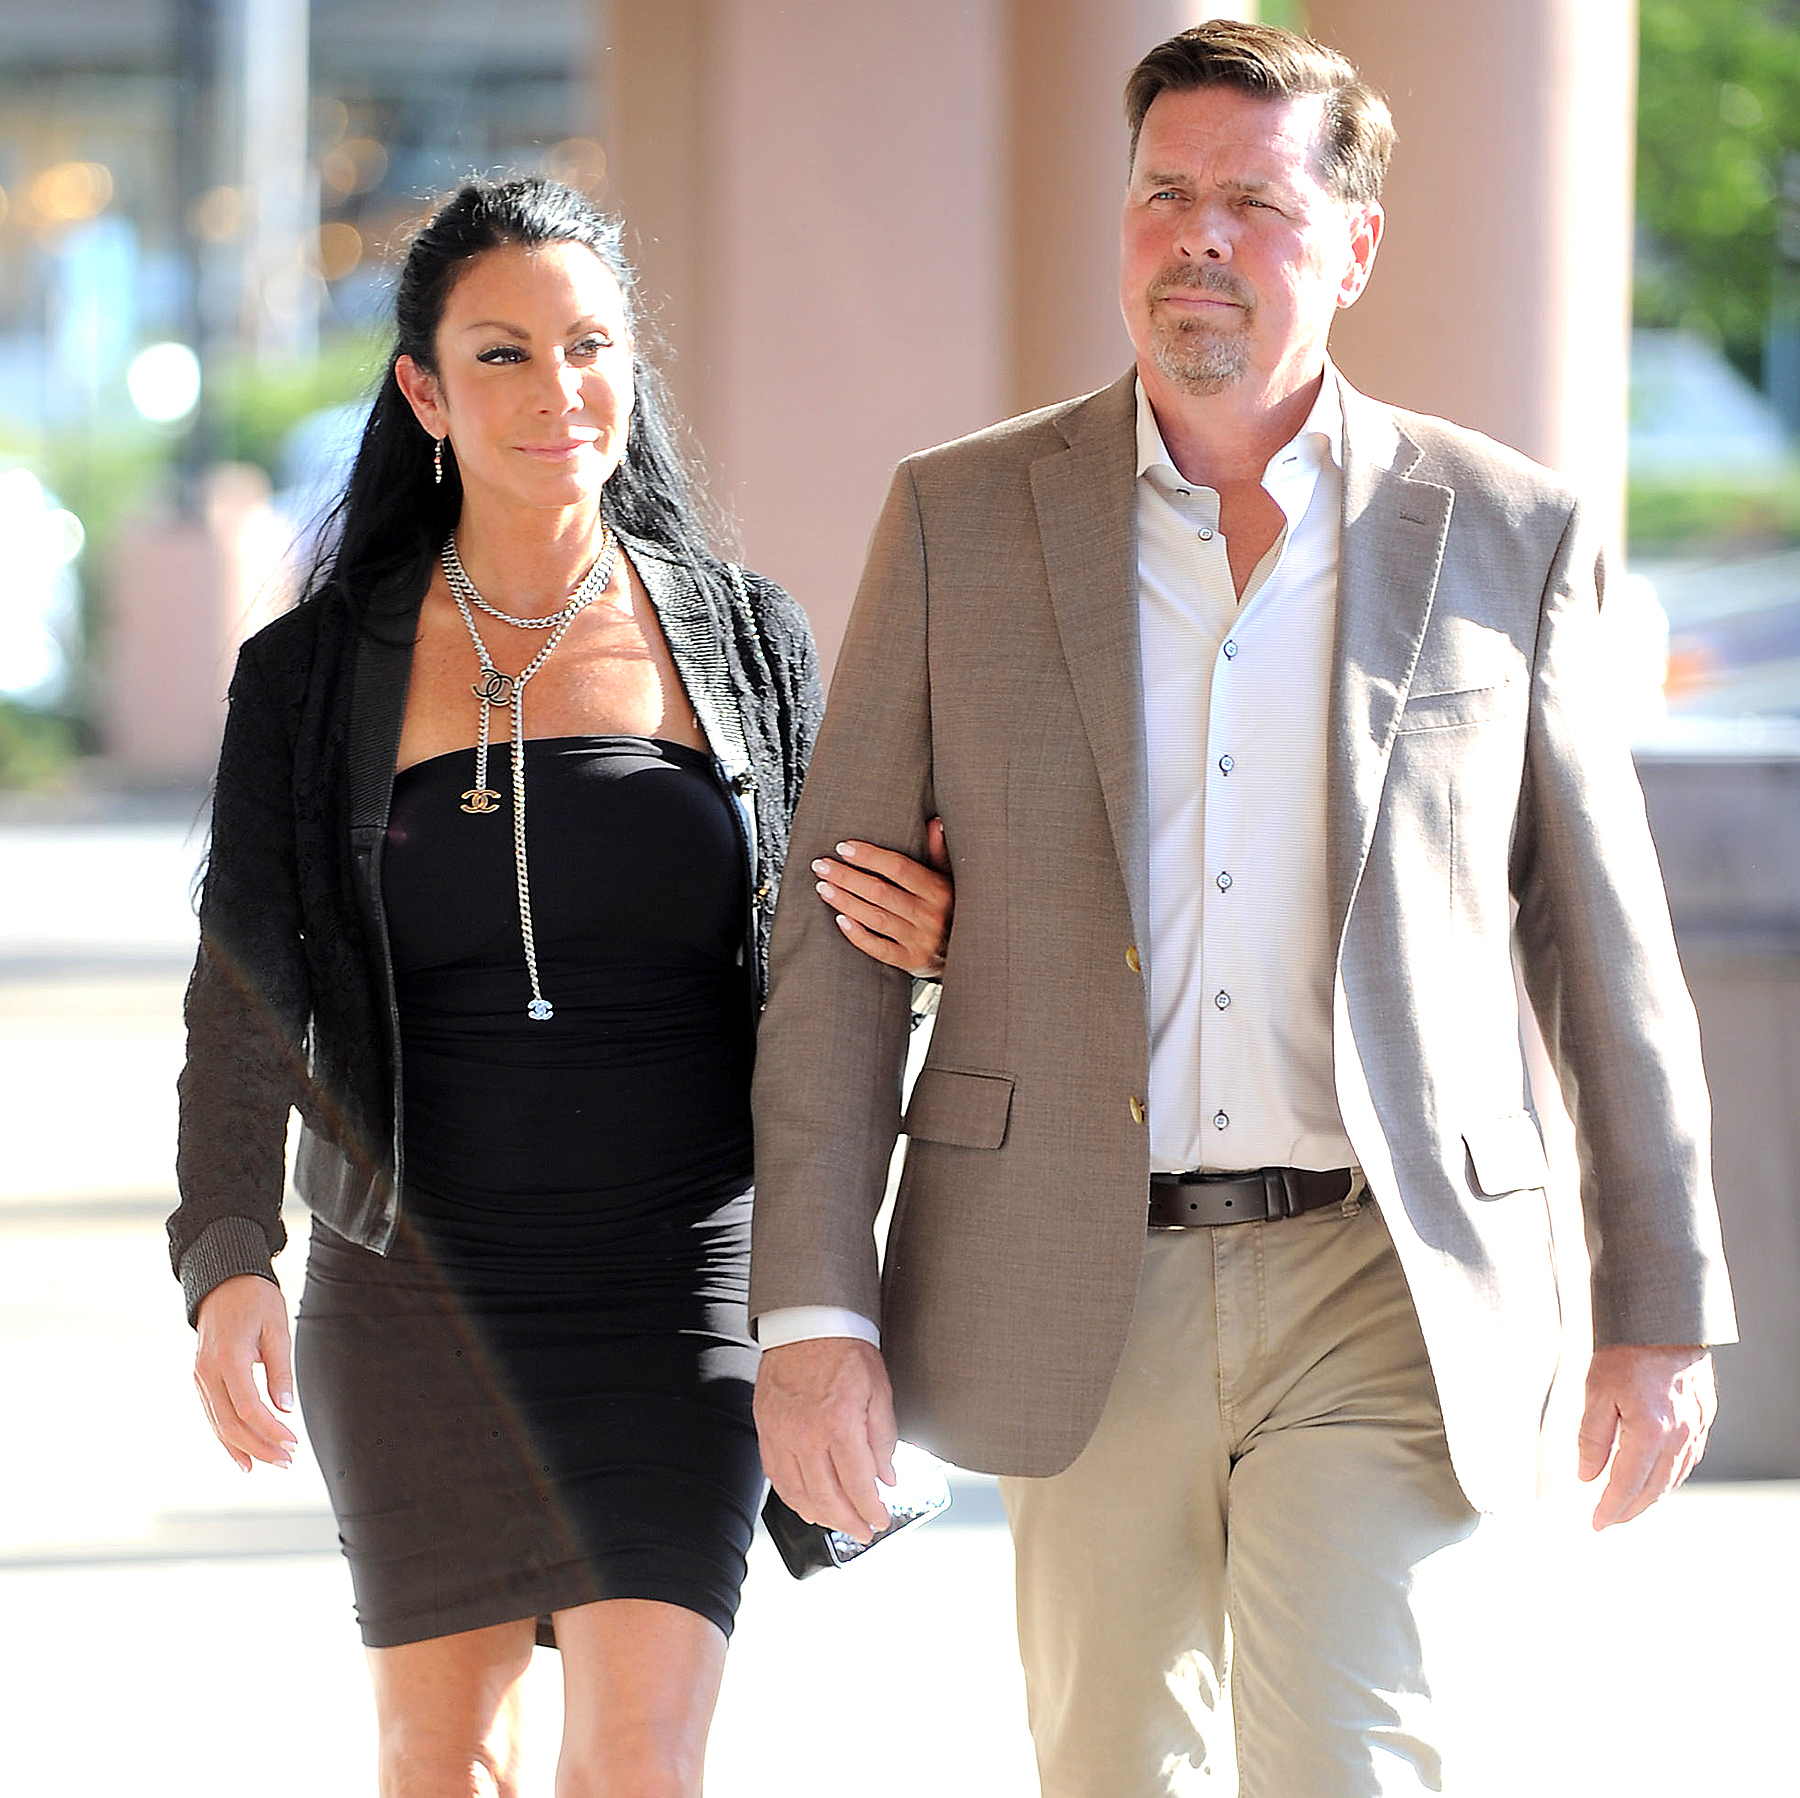 Danielle Staub and Marty Caffrey in East Hanover, New Jersey, on May 18, 2017.